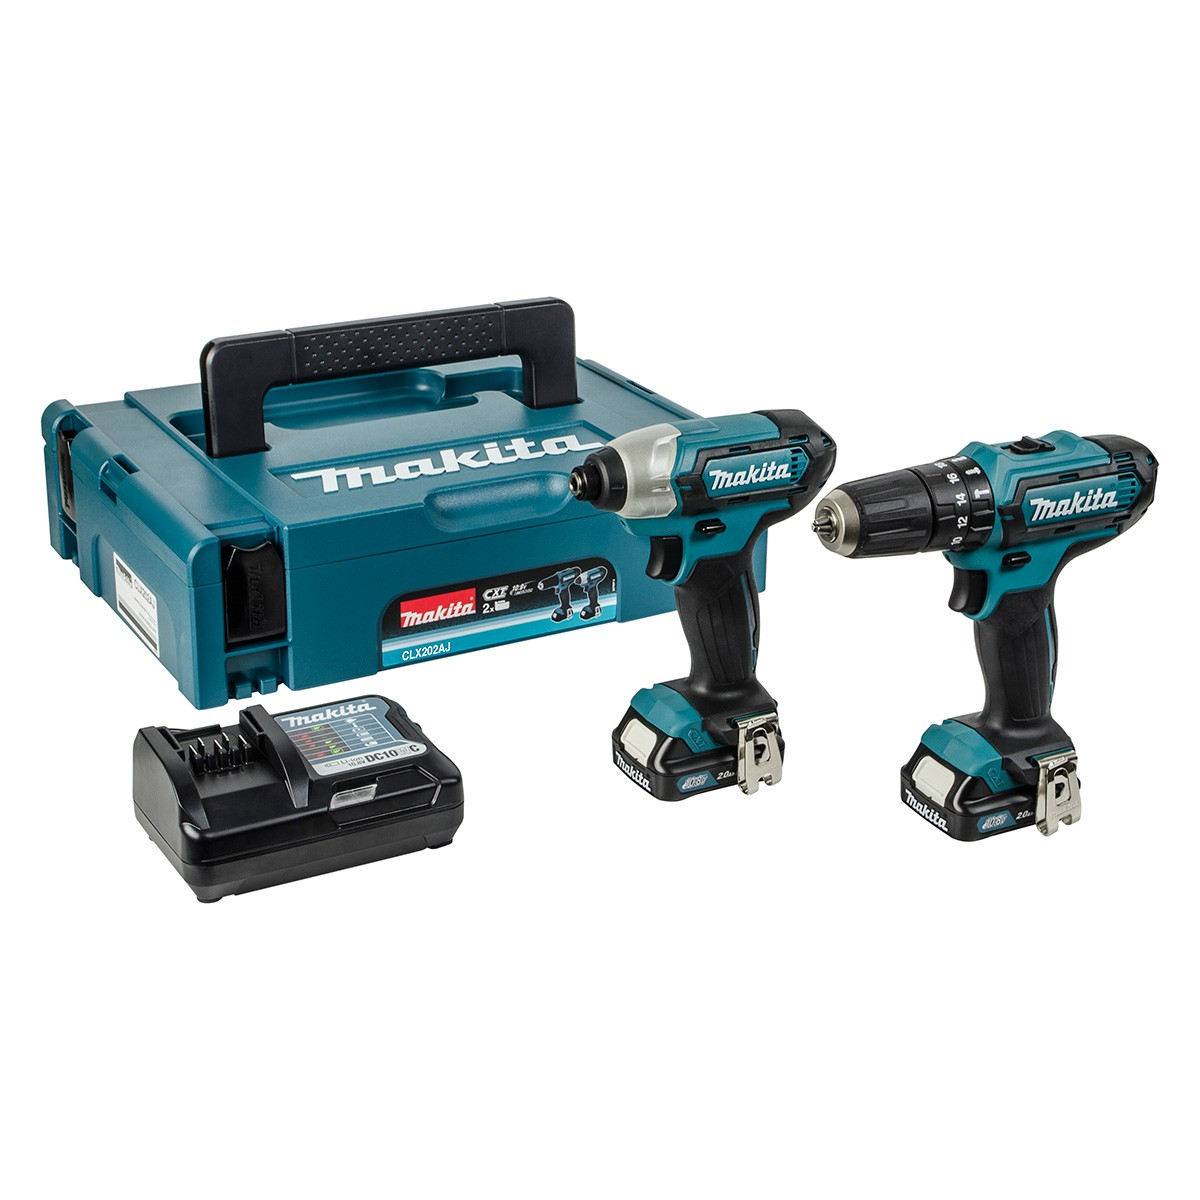 makita drill set clx202aj cxt slide twin pack combi. Black Bedroom Furniture Sets. Home Design Ideas